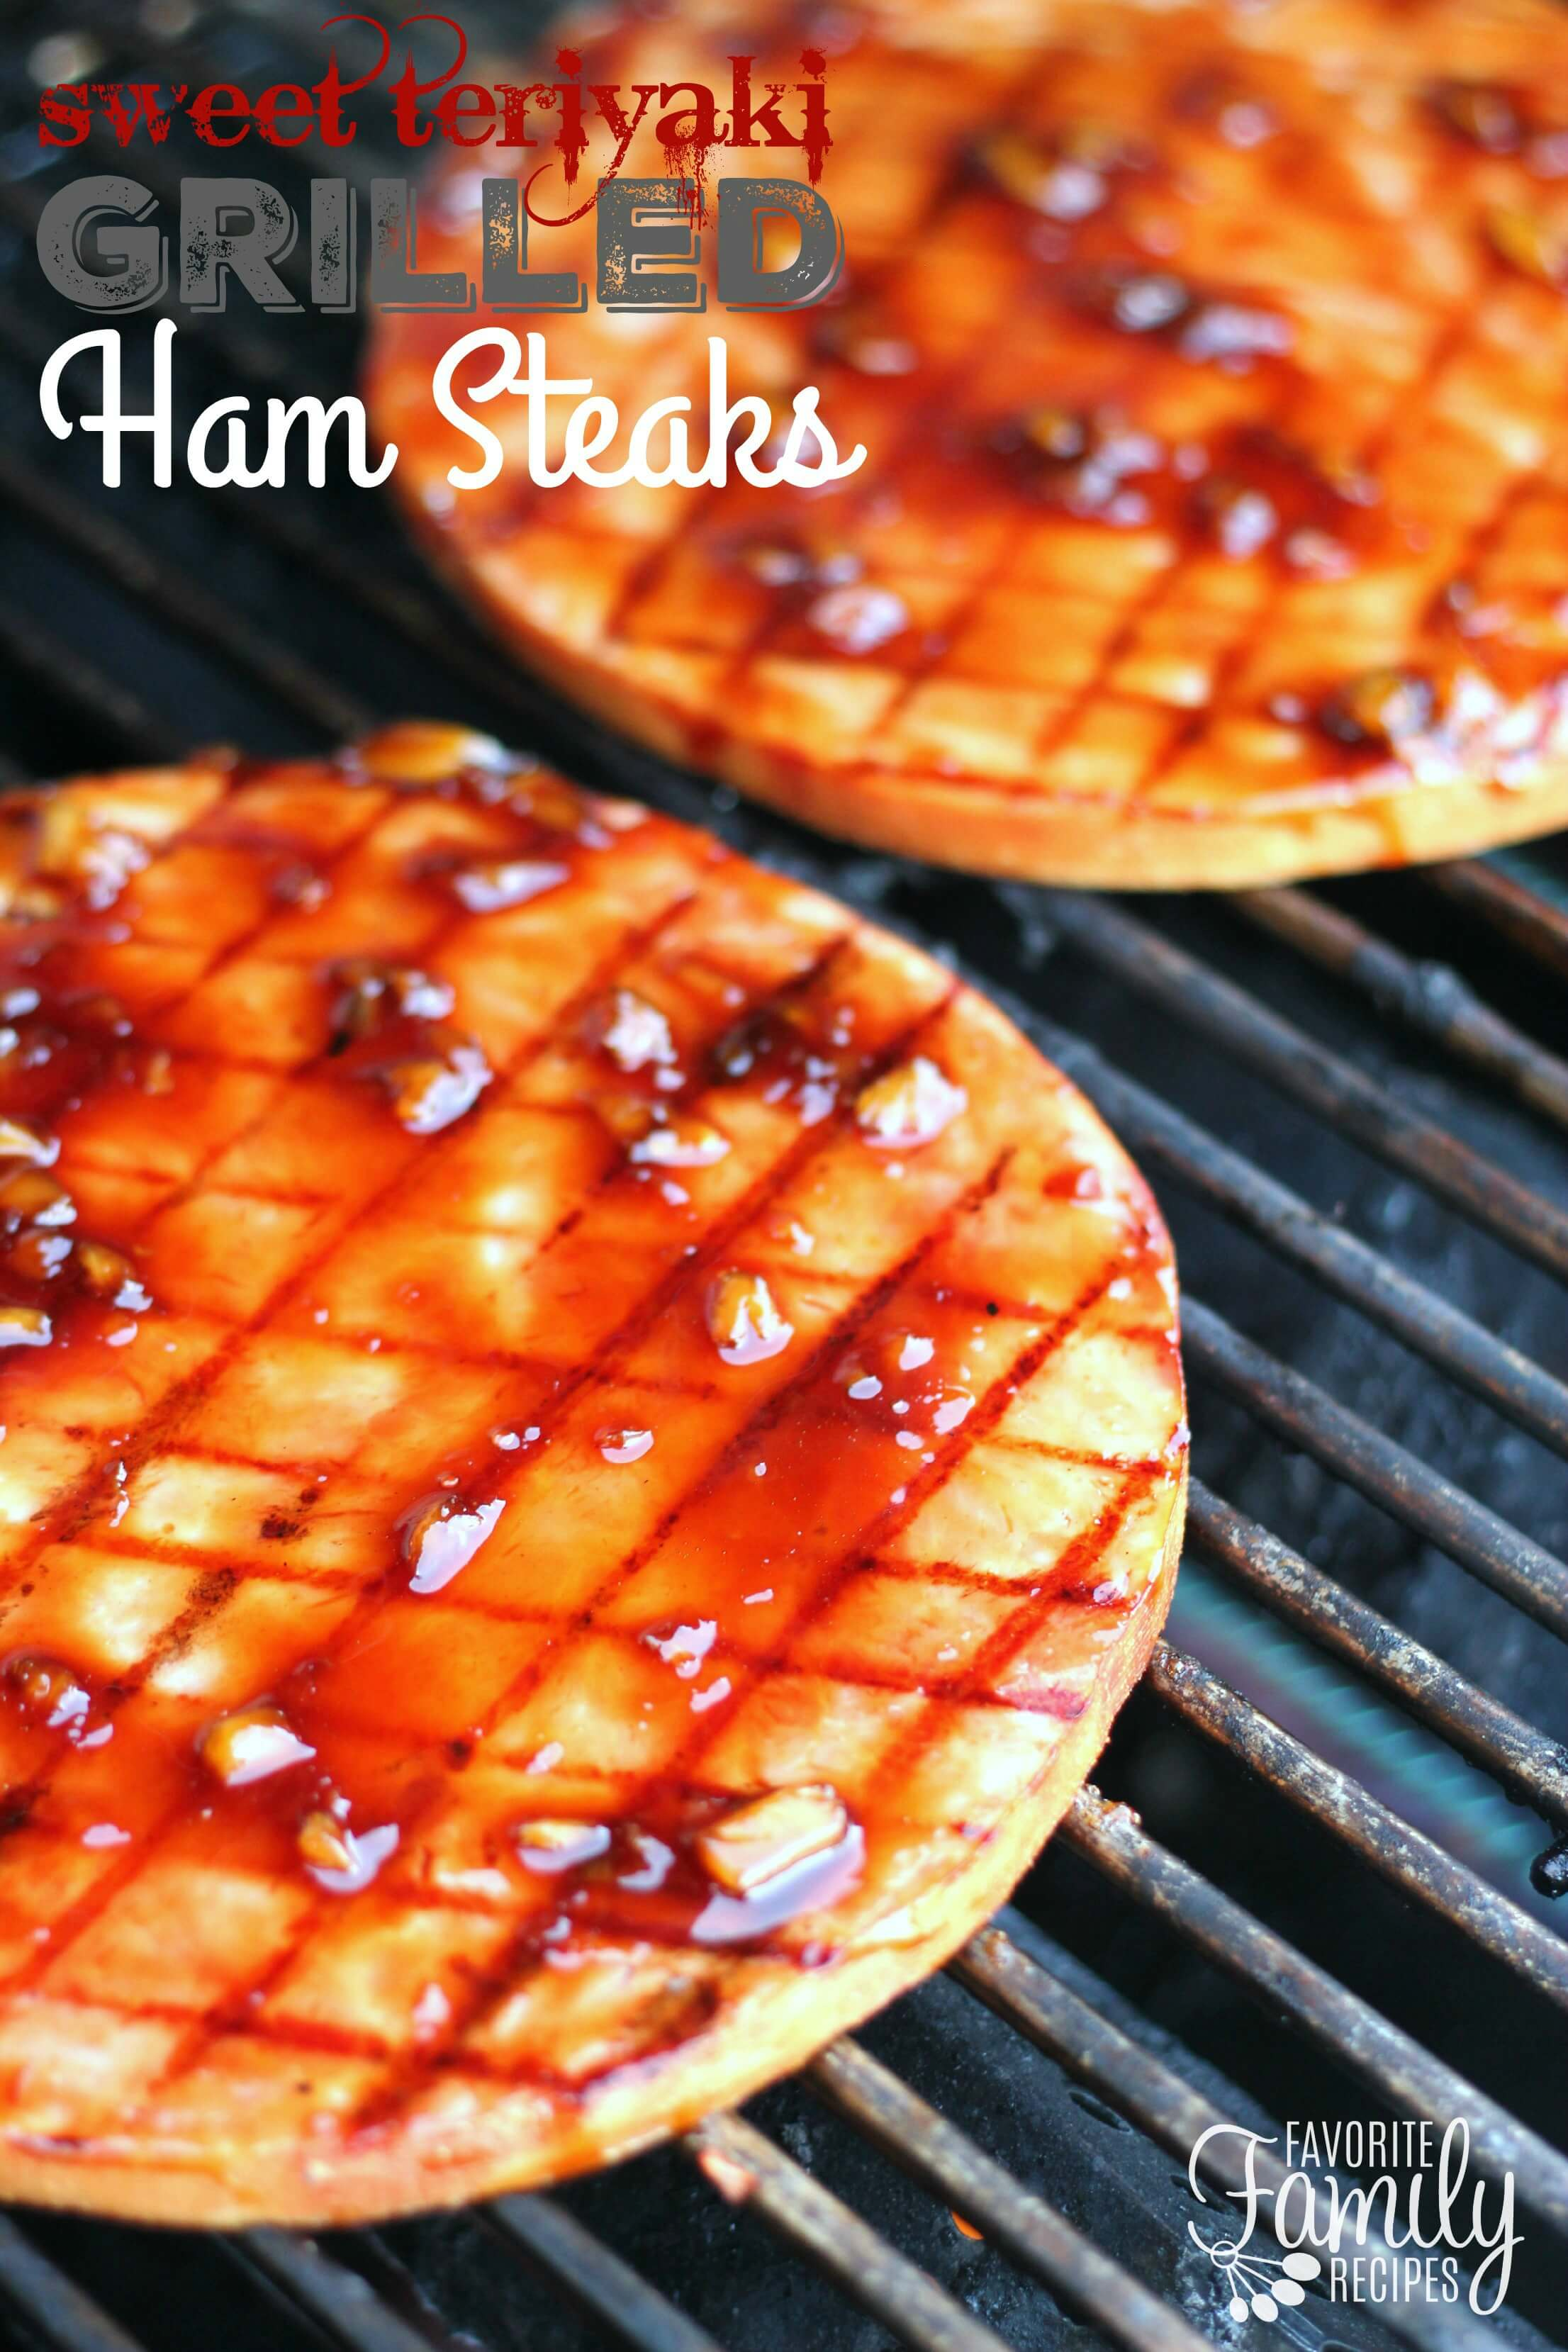 Sweet teriyaki grilled ham steaks favorite family recipes sweet teriyaki grilled ham steaks forumfinder Gallery